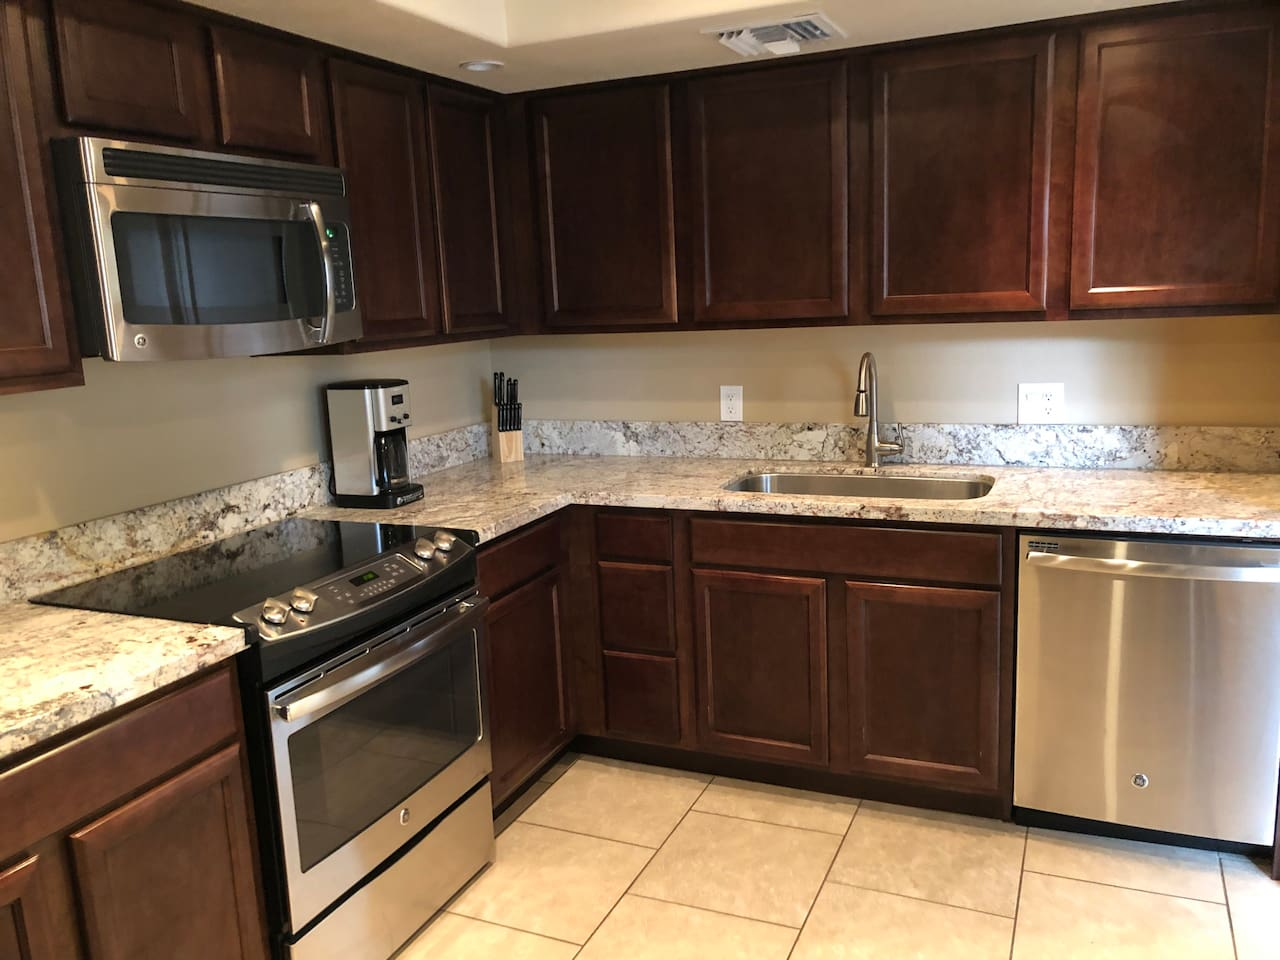 Beautifully updated kitchen with custom cabinets, granite countertops and stainless steel appliances!